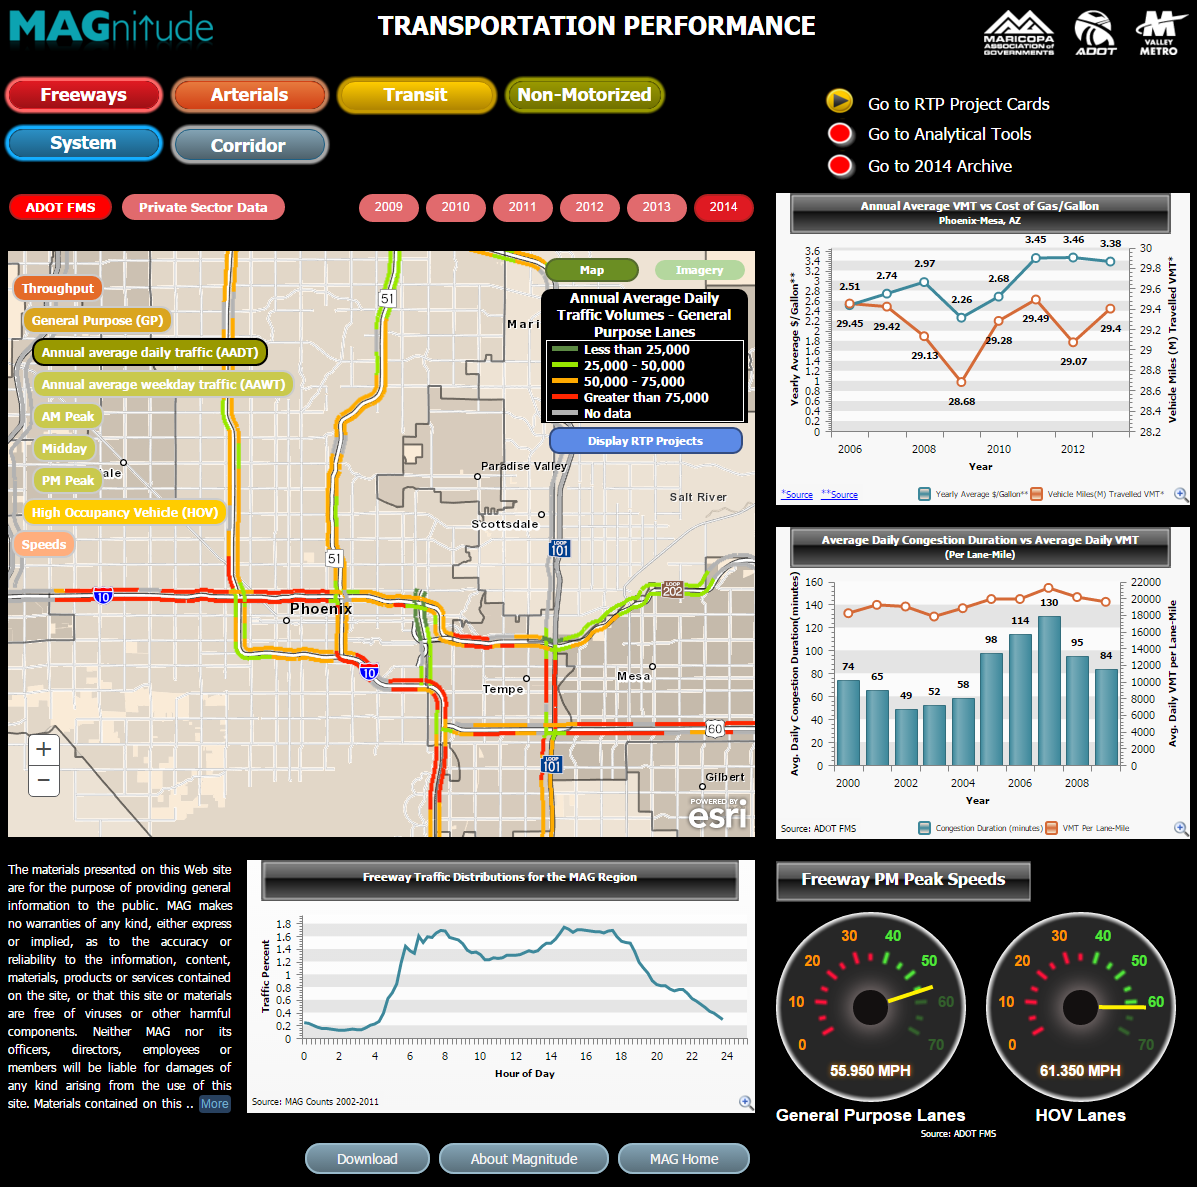 Screenshot of Magnitude transportation performance reporting website including map, data graphs, freeway speeds speedometer presentation, and other information.